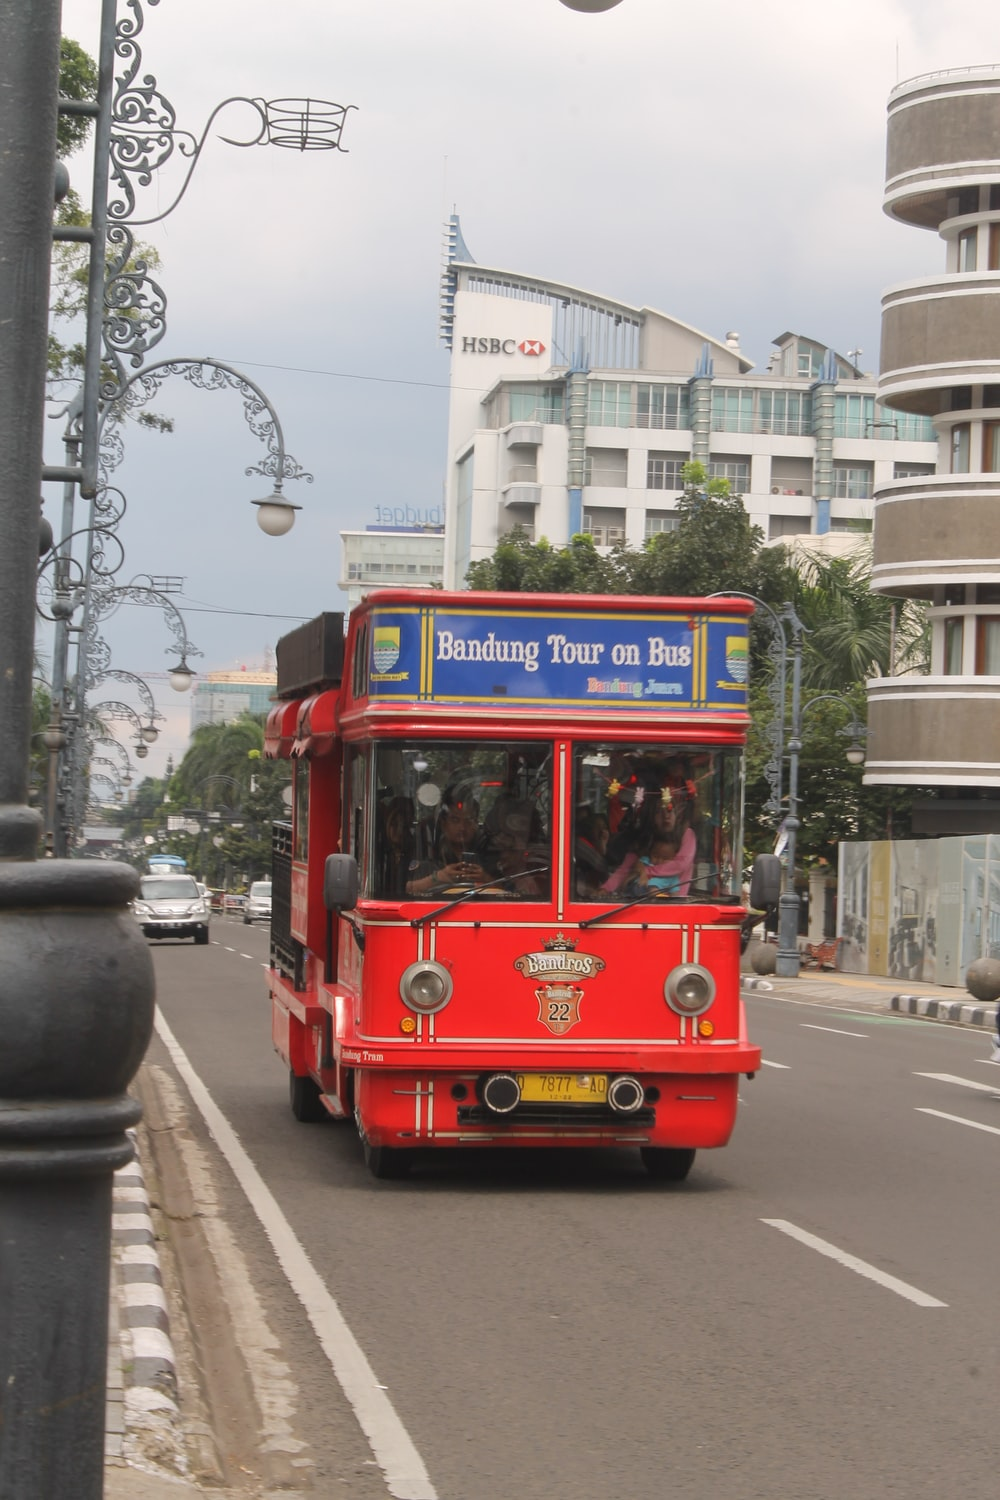 red and blue bus on road during daytime